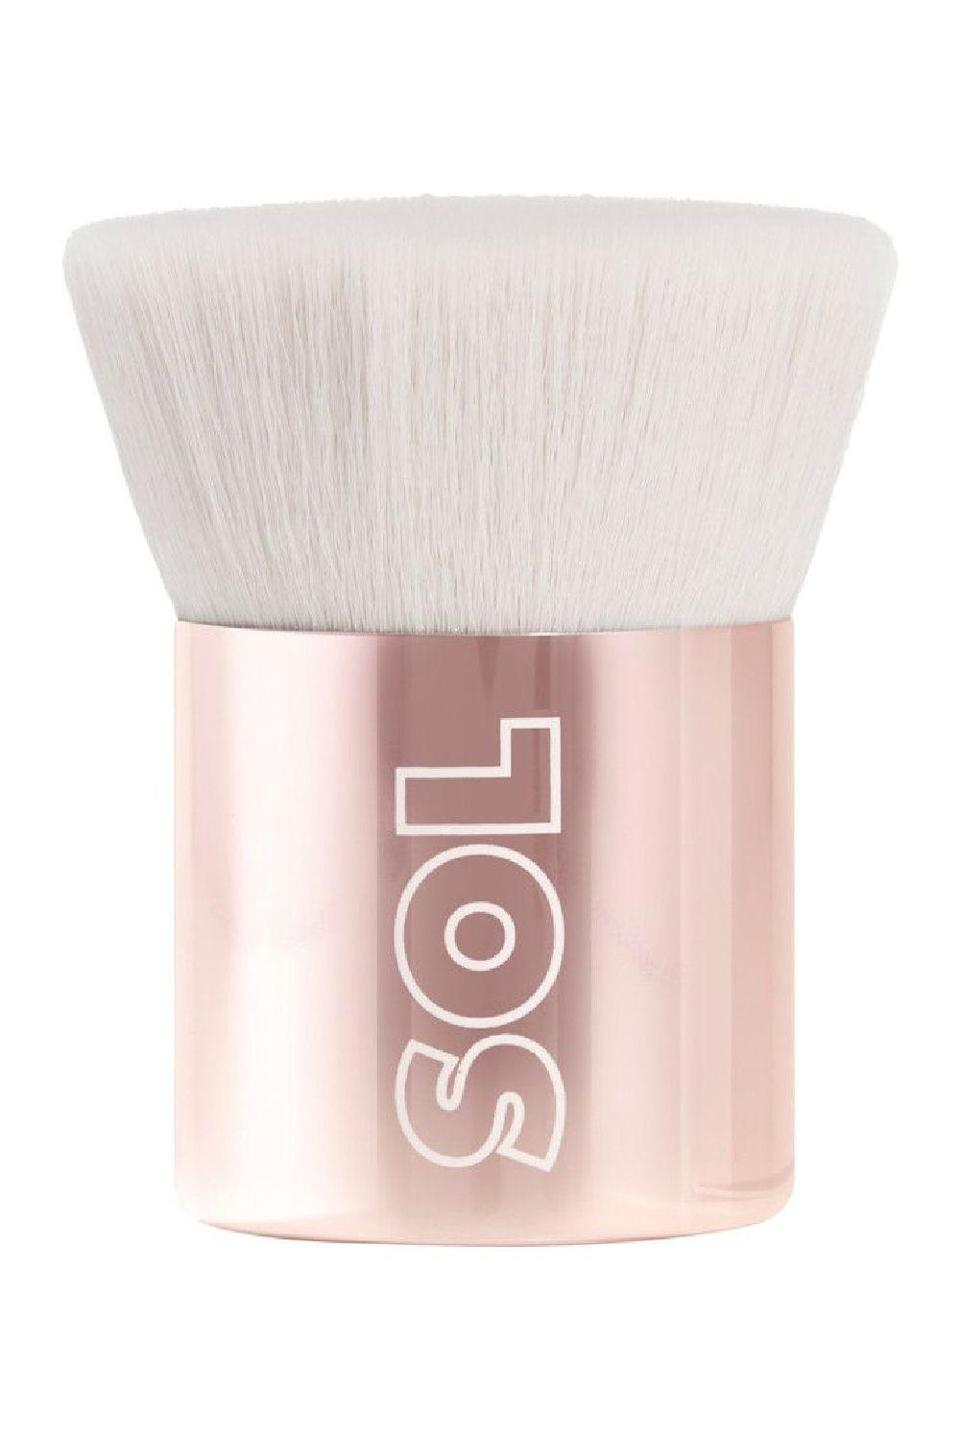 """<p><strong>SOL Body</strong></p><p>ulta.com</p><p><strong>$12.00</strong></p><p><a href=""""https://go.redirectingat.com?id=74968X1596630&url=https%3A%2F%2Fwww.ulta.com%2Fbody-kabuki-brush%3FproductId%3Dpimprod2013092&sref=https%3A%2F%2Fwww.cosmopolitan.com%2Fstyle-beauty%2Fbeauty%2Fg34552138%2Fbest-kabuki-brushes%2F"""" rel=""""nofollow noopener"""" target=""""_blank"""" data-ylk=""""slk:Shop Now"""" class=""""link rapid-noclick-resp"""">Shop Now</a></p><p>A kabuki brush doesn't <em>always</em> have rounded, dome-shaped bristles, and it also doesn't have to be used for face products. <strong>Use this body kabuki brush with firm, flat, bristles (also vegan, btw) to buff, swirl, and stipple creamy <a href=""""https://go.redirectingat.com?id=74968X1596630&url=https%3A%2F%2Fwww.nordstrom.com%2Fs%2Fvita-liberata-body-blur-instant-hd-skin-finish%2F4336394&sref=https%3A%2F%2Fwww.cosmopolitan.com%2Fstyle-beauty%2Fbeauty%2Fg34552138%2Fbest-kabuki-brushes%2F"""" rel=""""nofollow noopener"""" target=""""_blank"""" data-ylk=""""slk:body makeup"""" class=""""link rapid-noclick-resp"""">body makeup</a></strong>, shimmery <a href=""""https://www.cosmopolitan.com/style-beauty/beauty/g25588784/best-body-oils/"""" rel=""""nofollow noopener"""" target=""""_blank"""" data-ylk=""""slk:body oils"""" class=""""link rapid-noclick-resp"""">body oils</a>, or <a href=""""https://www.cosmopolitan.com/style-beauty/beauty/g28966753/liquid-highlighter-makeup/"""" rel=""""nofollow noopener"""" target=""""_blank"""" data-ylk=""""slk:liquid highlighters"""" class=""""link rapid-noclick-resp"""">liquid highlighters</a>.</p>"""